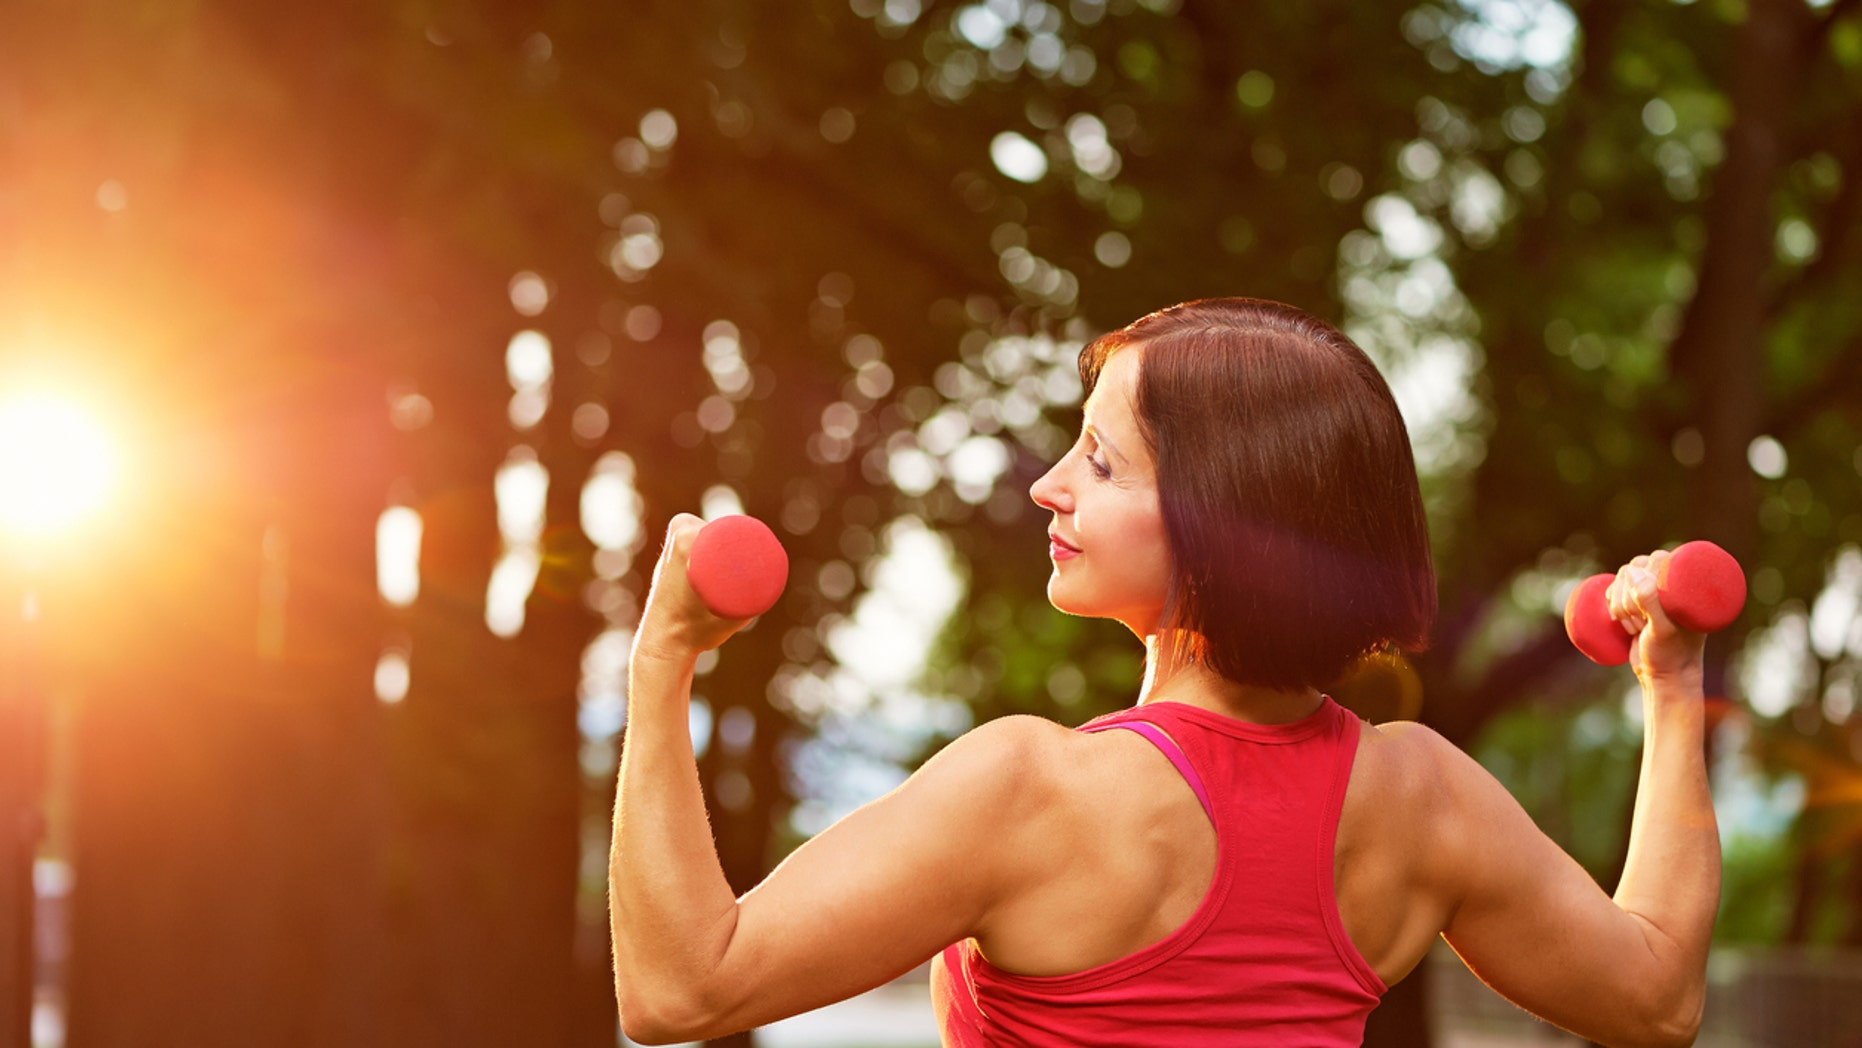 Aged woman working out with small dumbbells in the park in the morning.